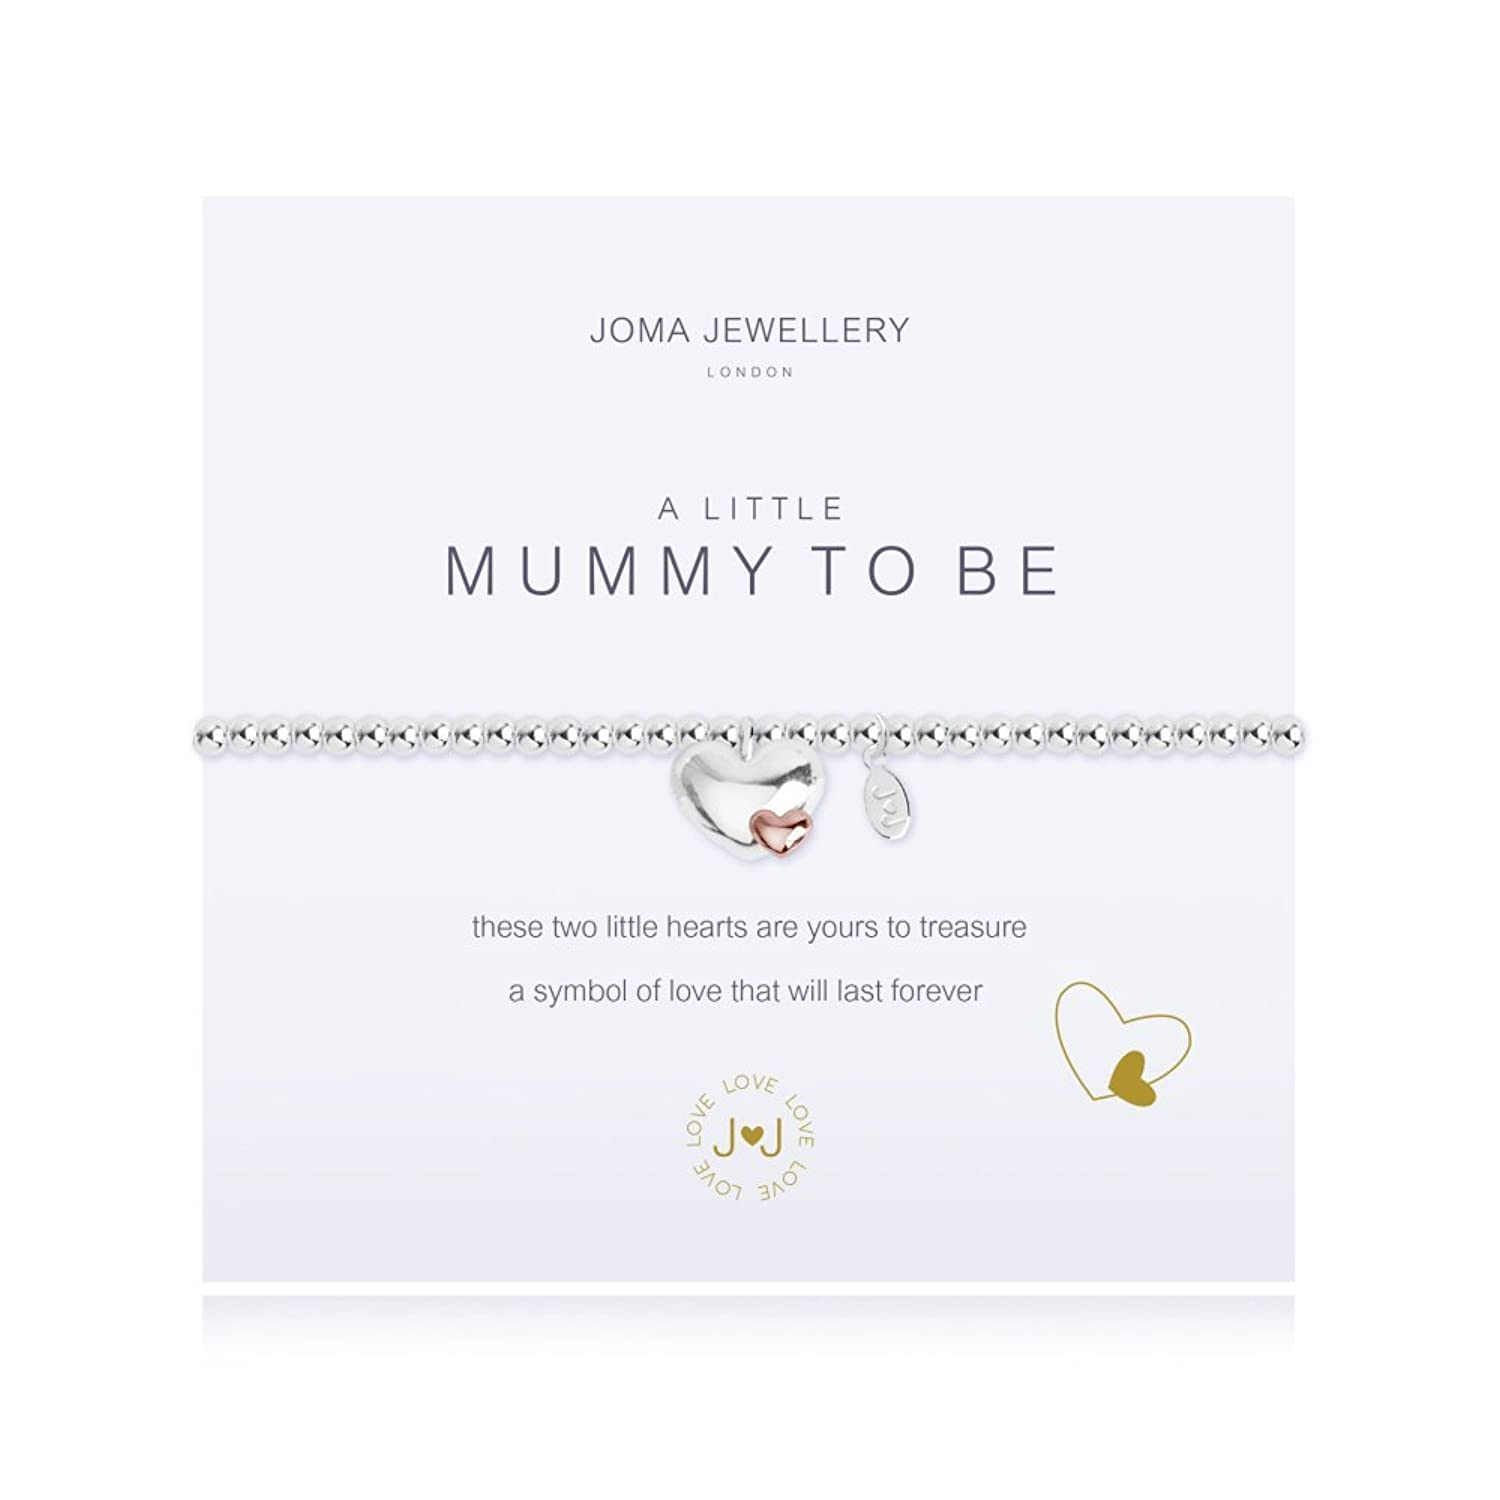 Joma jewellery a little mummy to be rosegold bracelet joma joma jewellery a little mummy to be rosegold bracelet joma amazon jewellery biocorpaavc Images